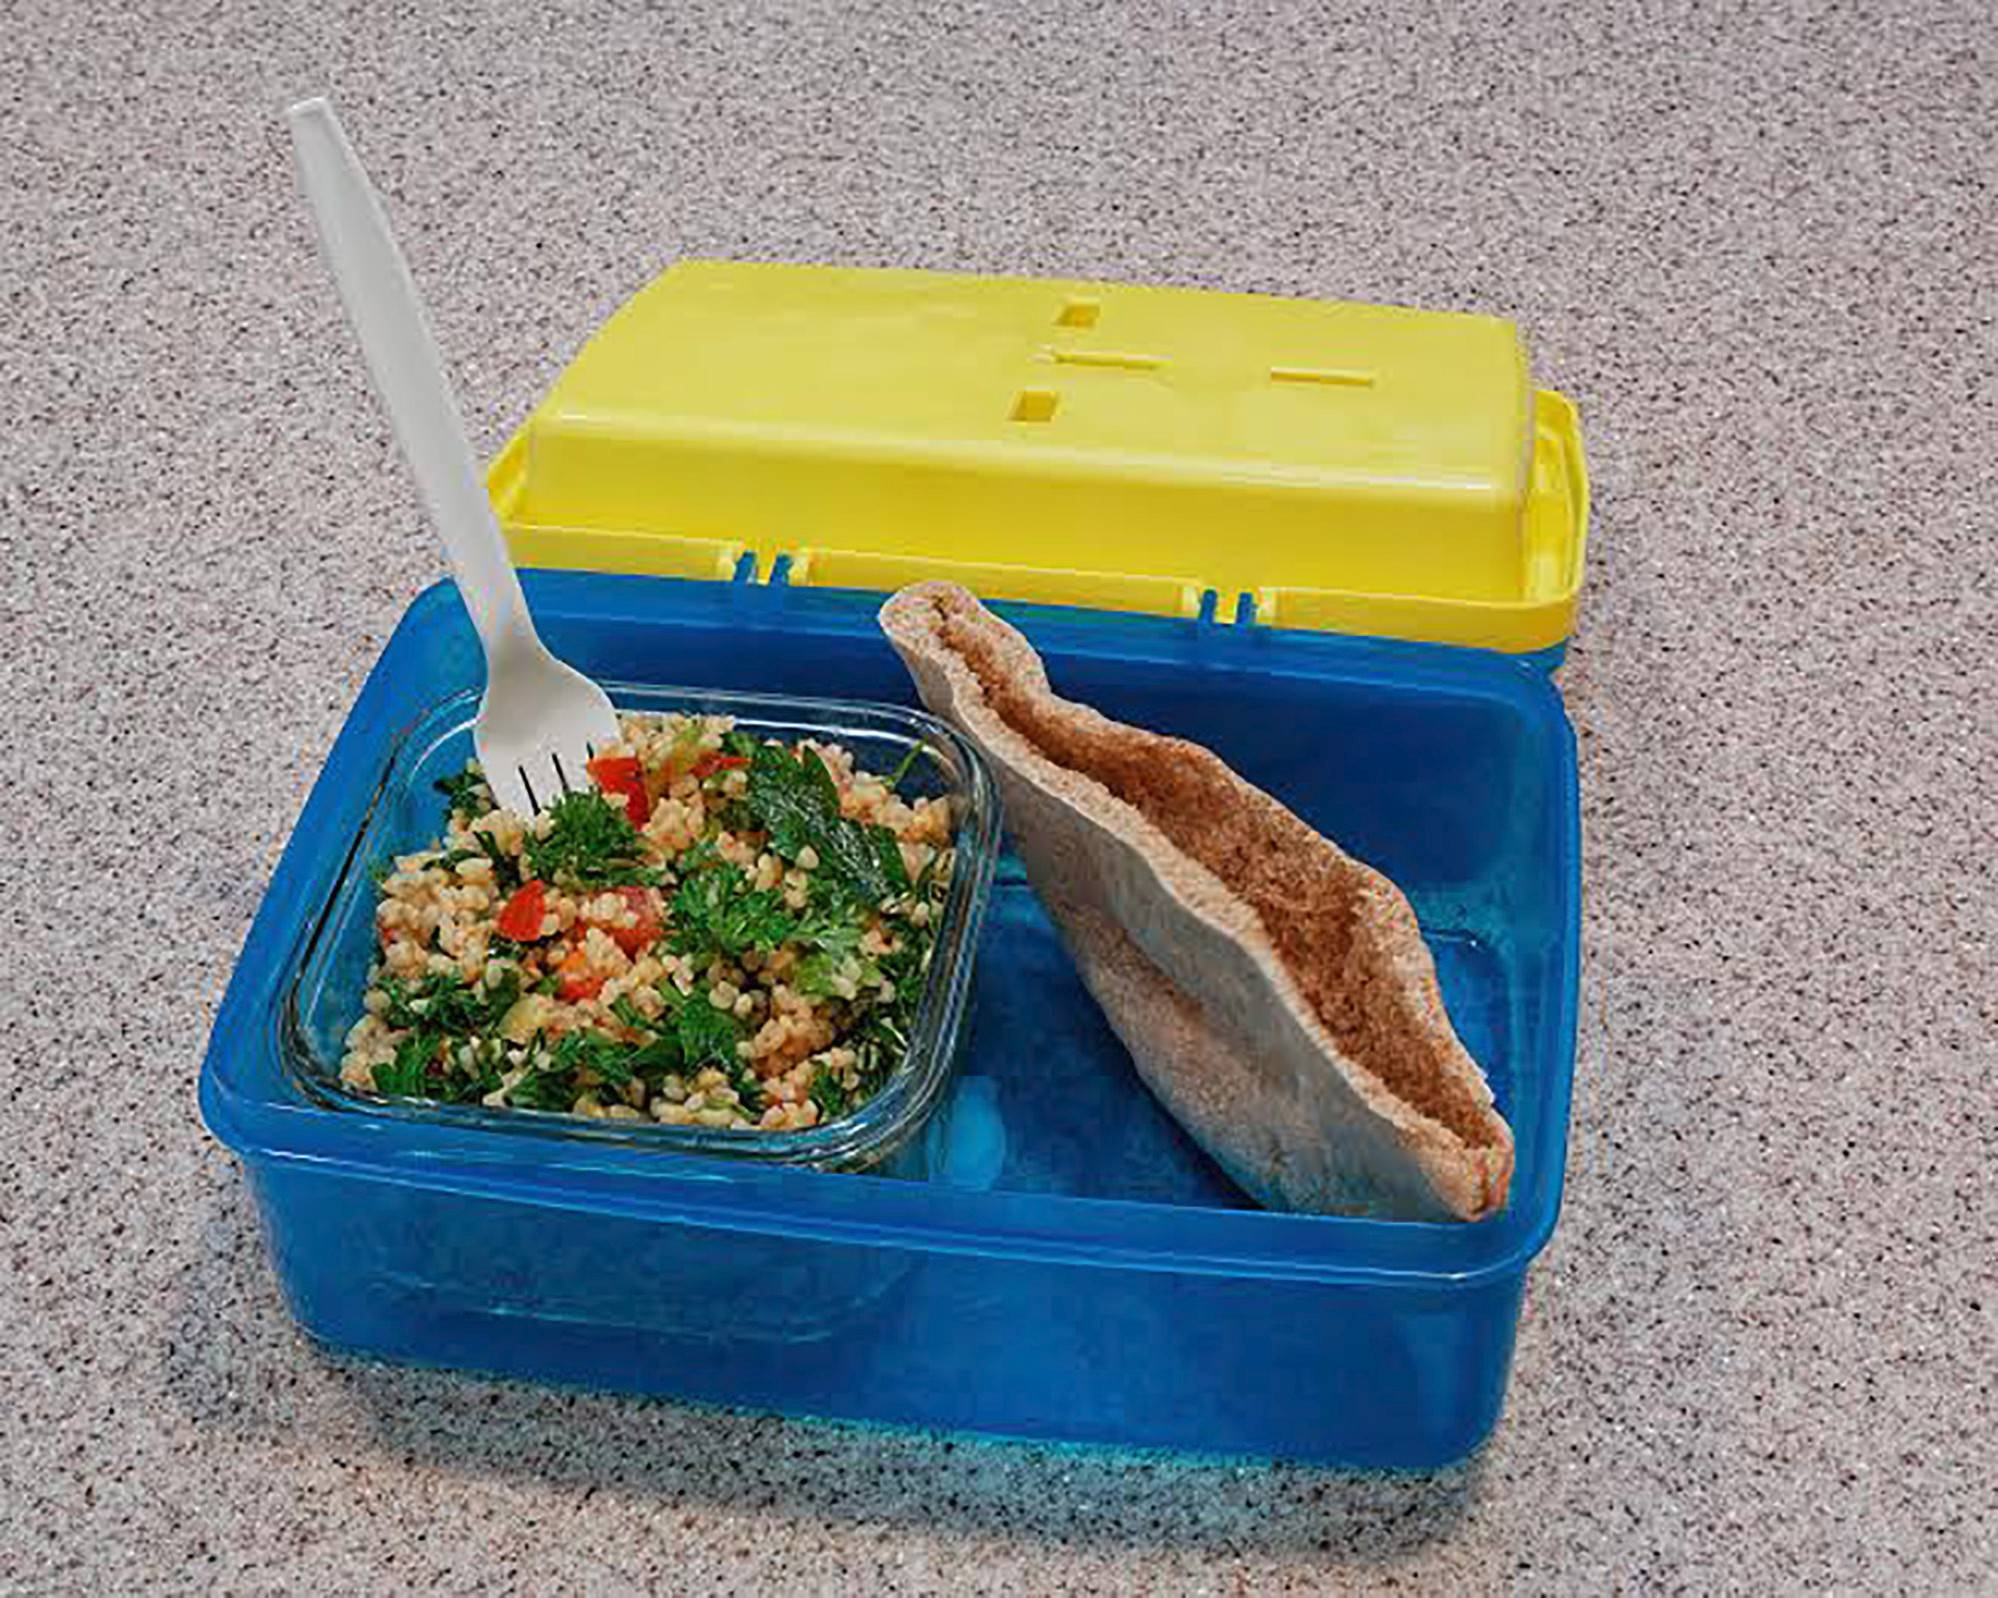 Courtesy of Christine PalumboA compartmentalized lunch box featuring a tabbouleh salad and whole wheat pita bread.